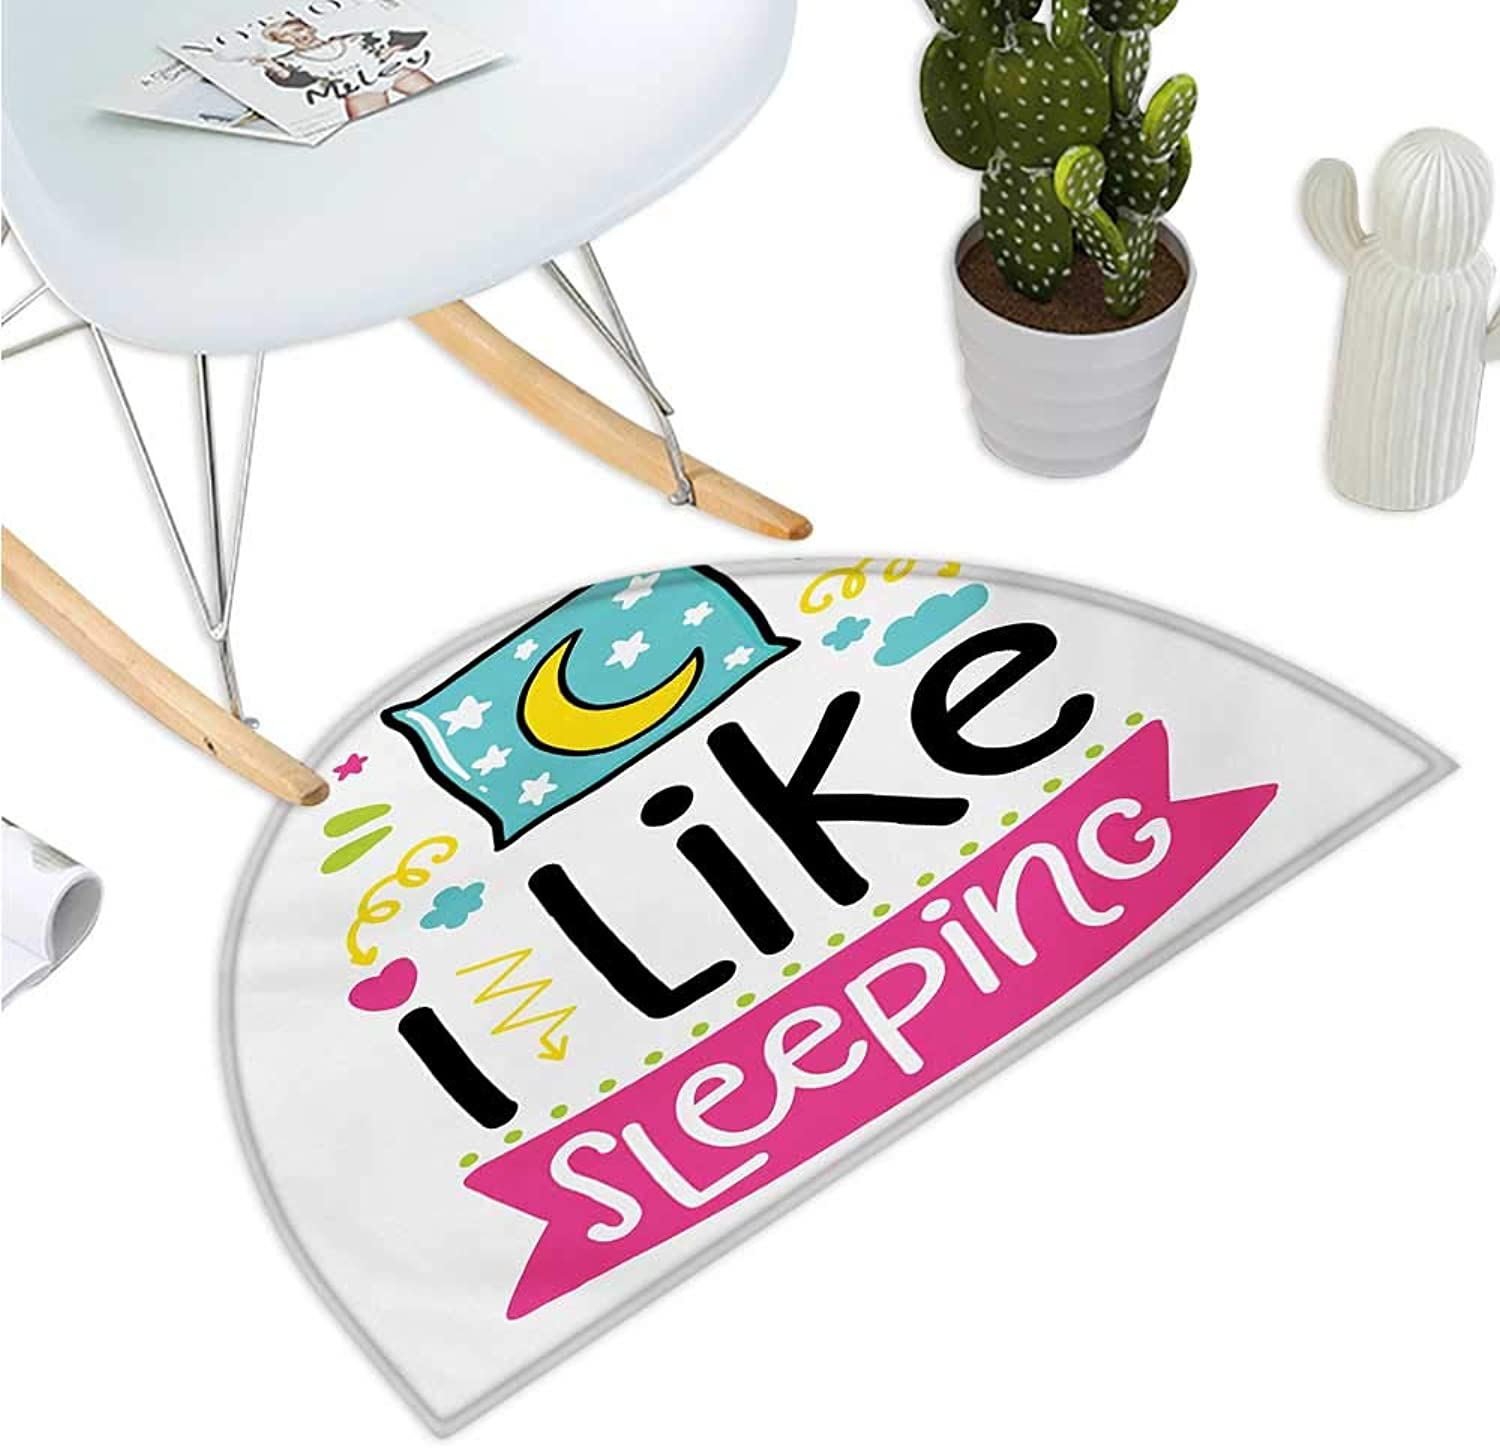 Quote Half Round Door mats Kids Toddler Nursery Design with I Like Sleeping Text Pillow Stars Arrows The Moon Bathroom Mat H 51.1  xD 76.7  Multicolor